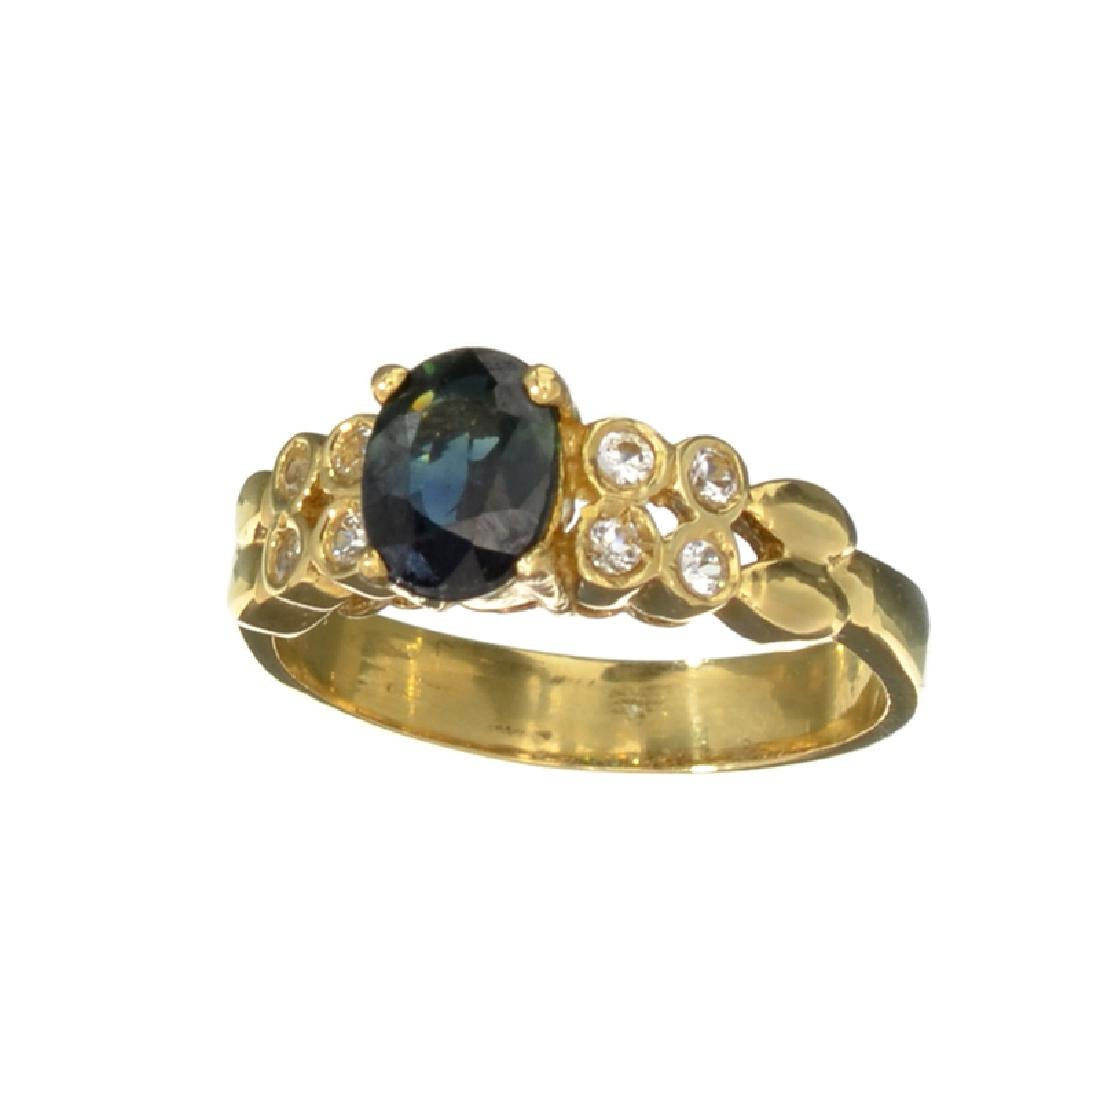 APP: 1.3k 14 kt. Gold, 1.21CT Bue And White Sapphire